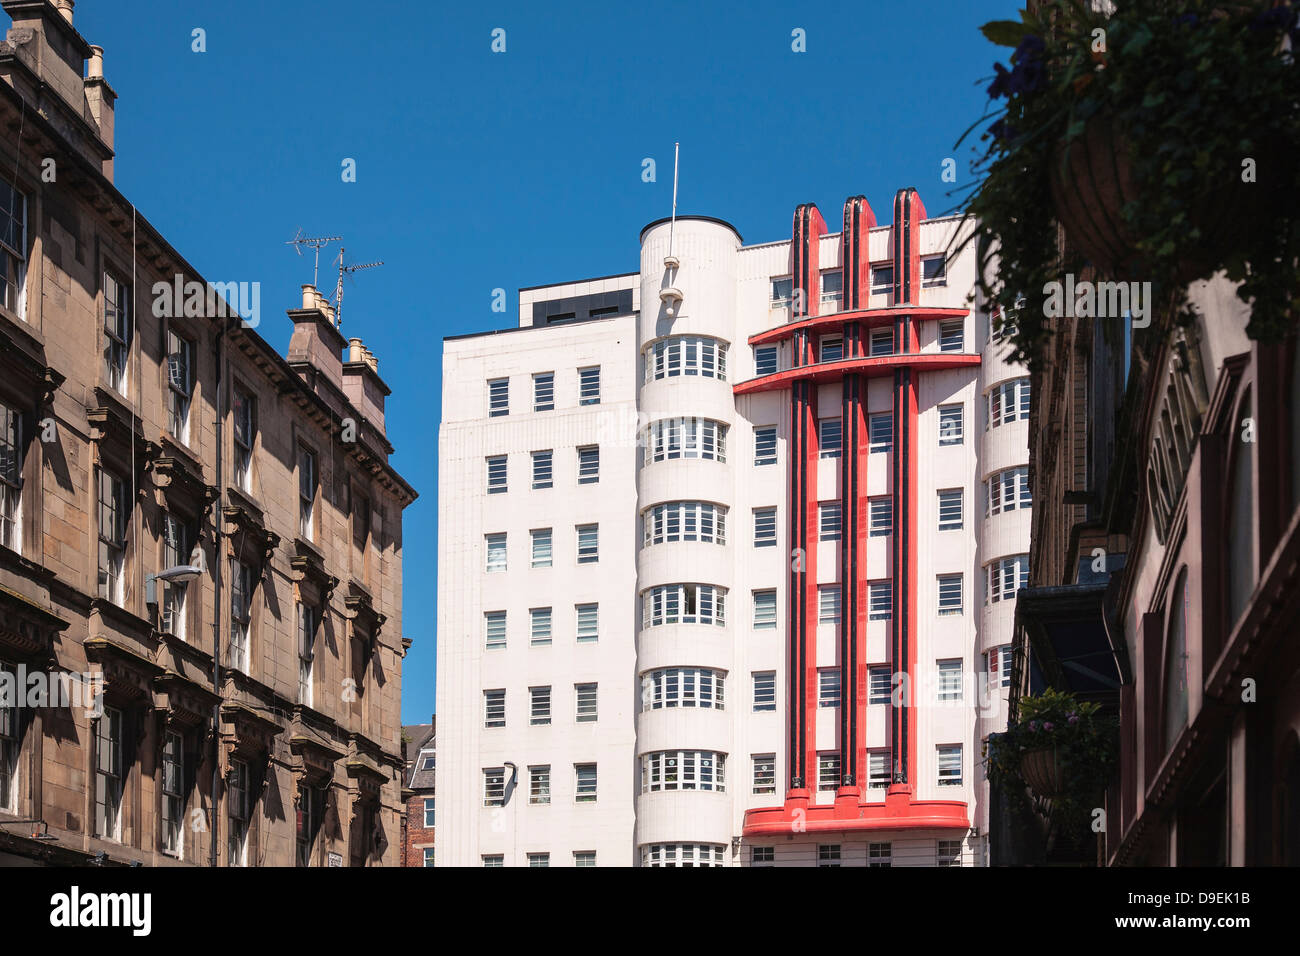 The stylish art deco Beresford Building in Glasgow.  The building is now an apartment block. - Stock Image